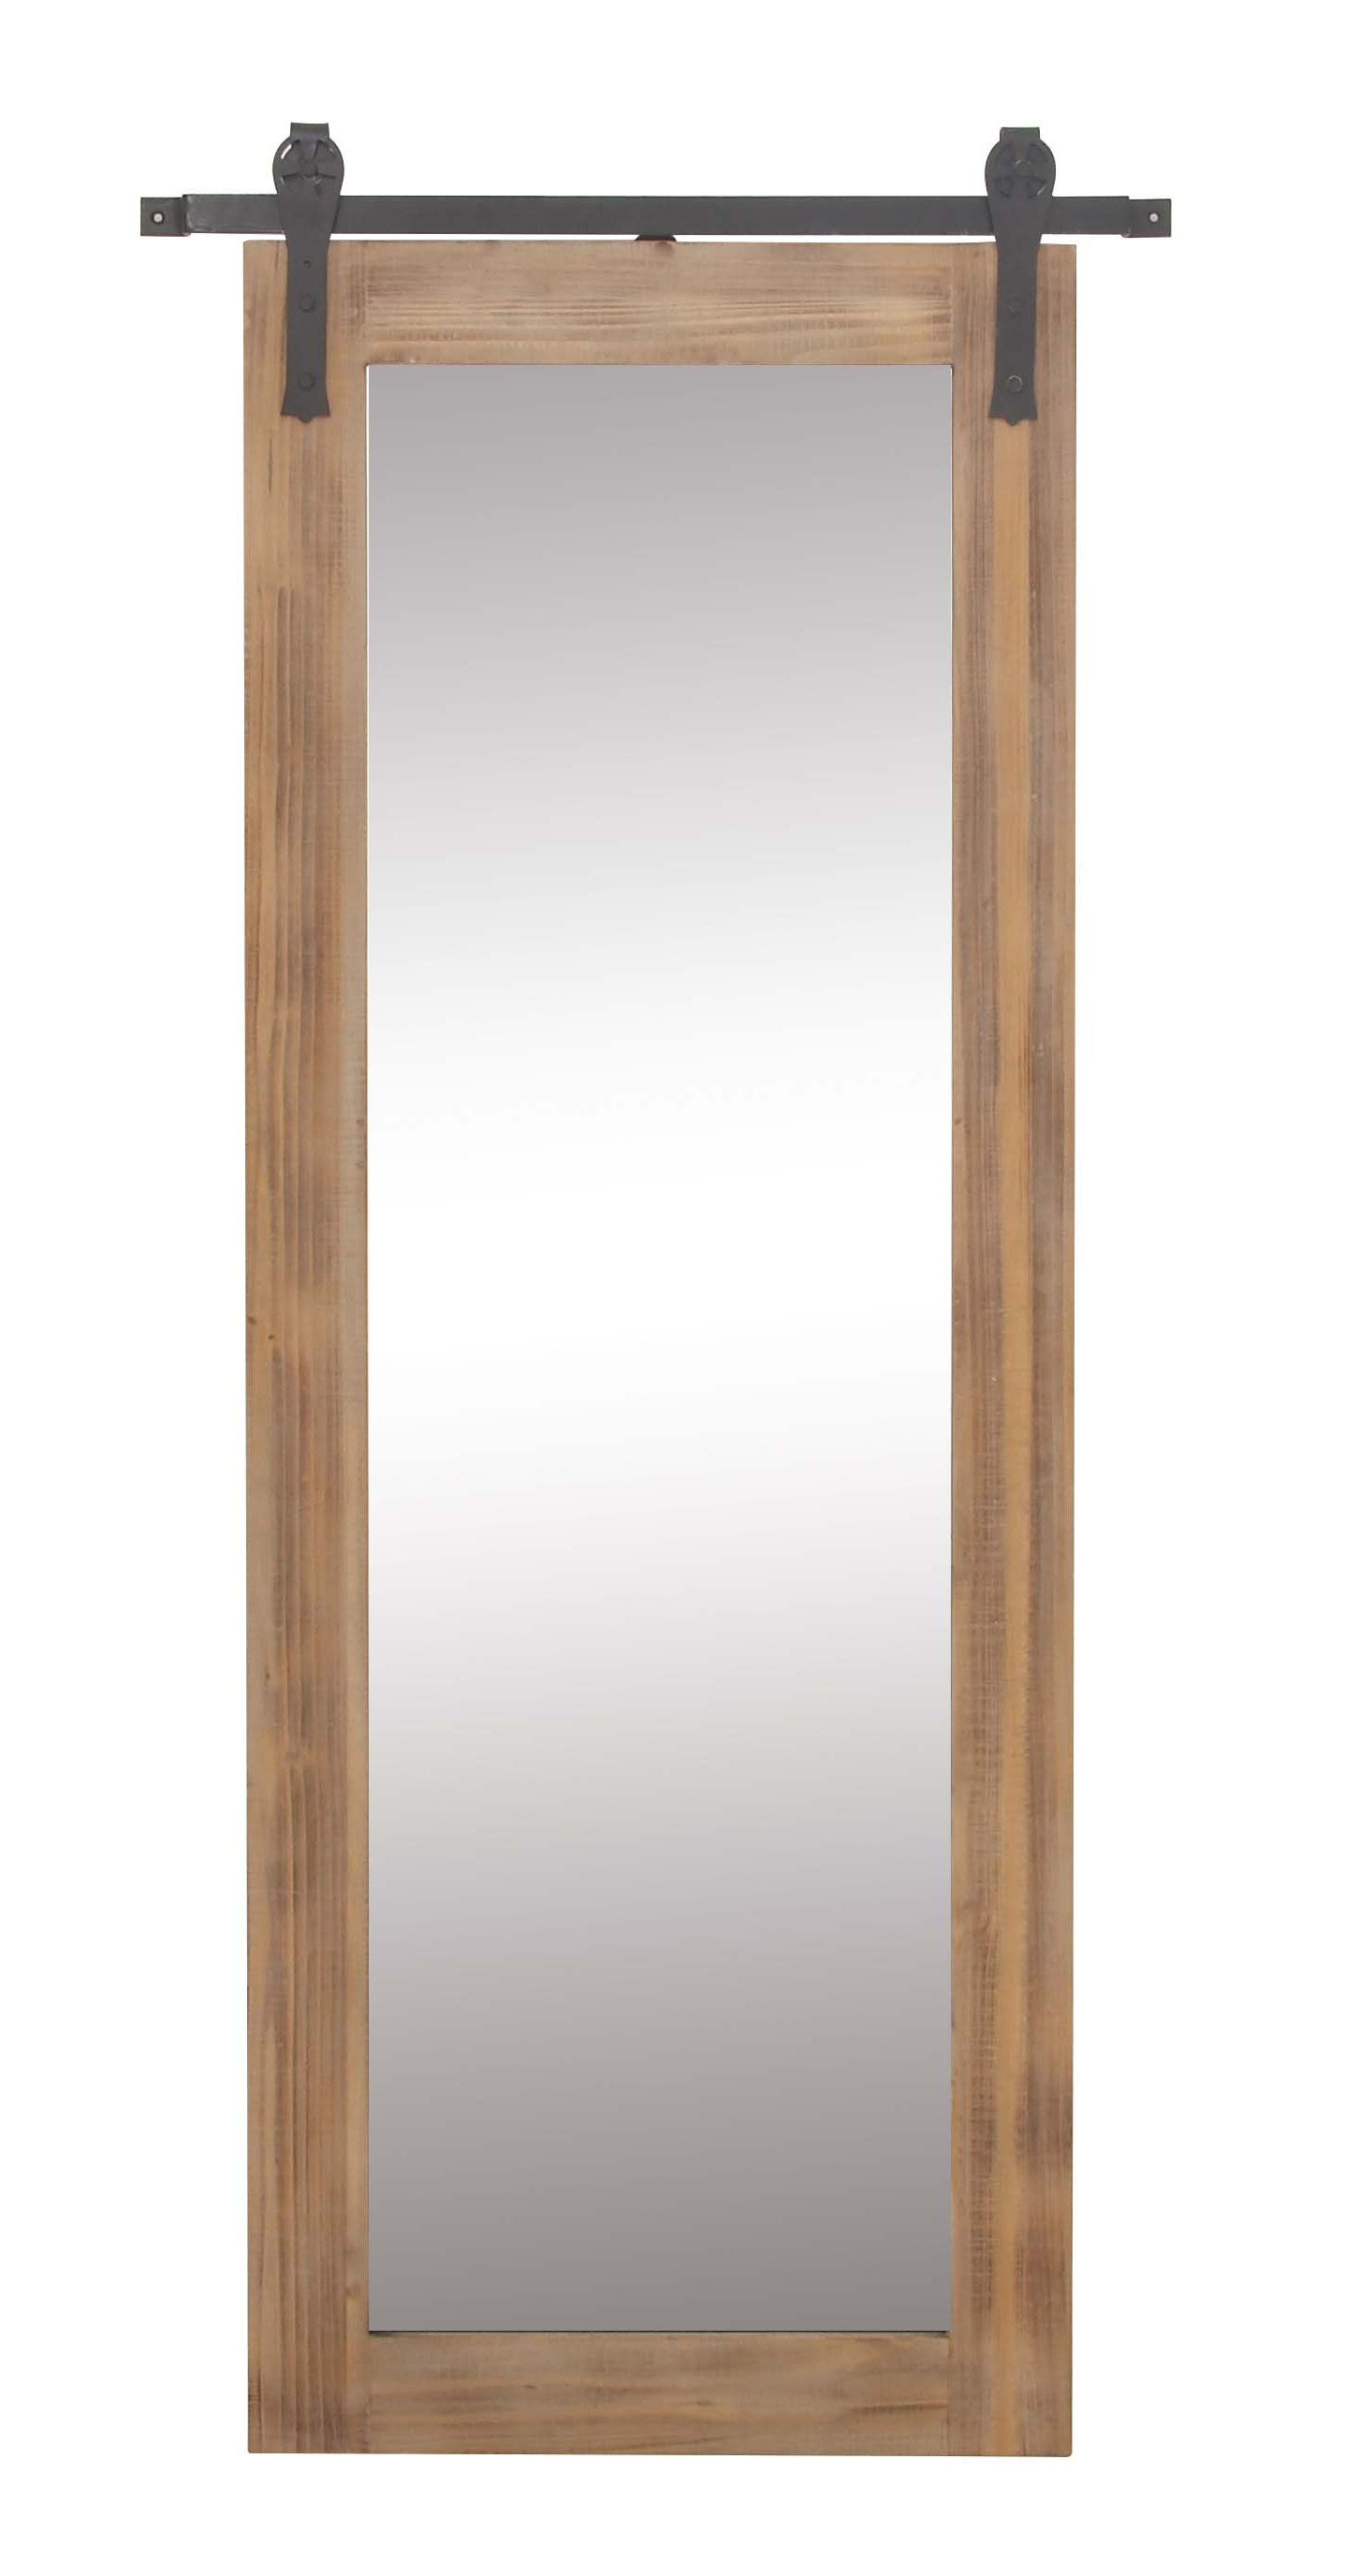 Decmode Farmhouse 70 X 32 Inch Rectangular Wooden Framed Wall Mirror With Metal Wall Brackets, Brown For 2020 Rectangle Wall Mirrors (View 19 of 20)